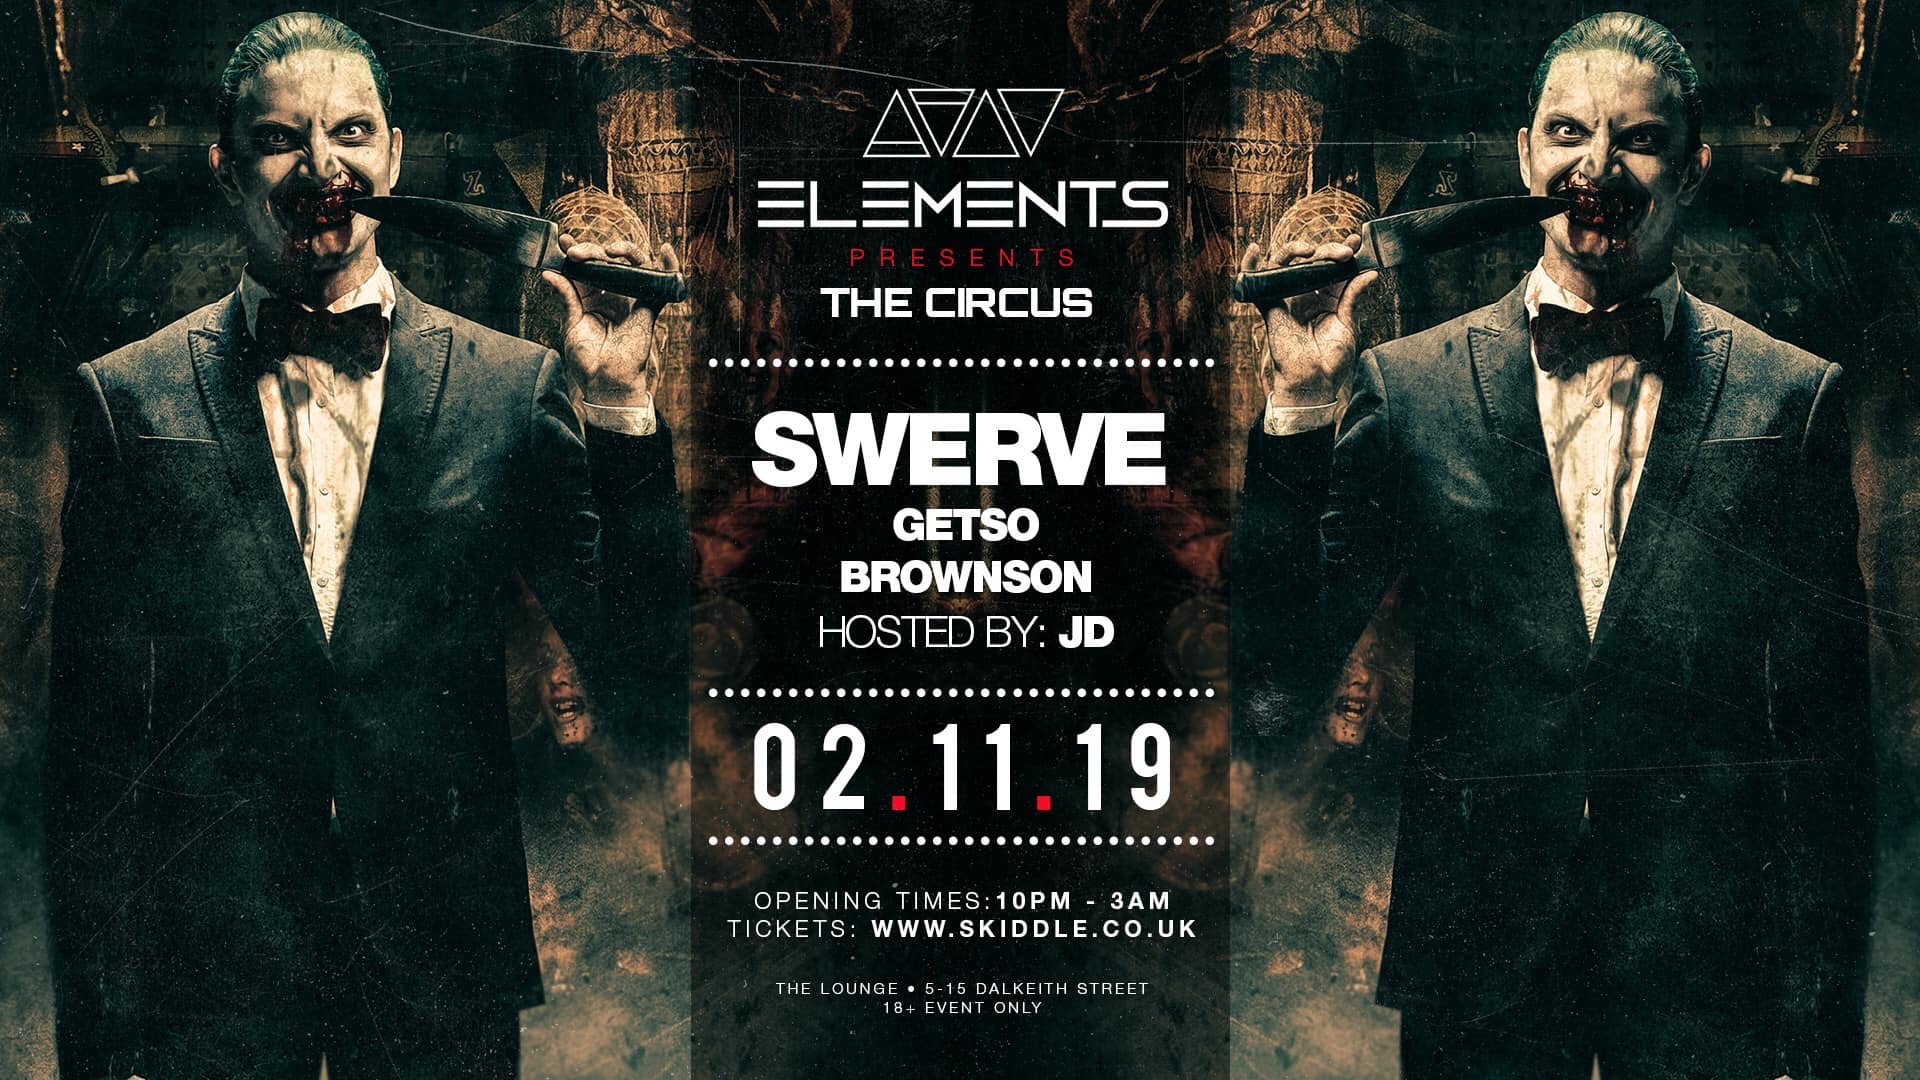 Elements presents: THE CIRCUS